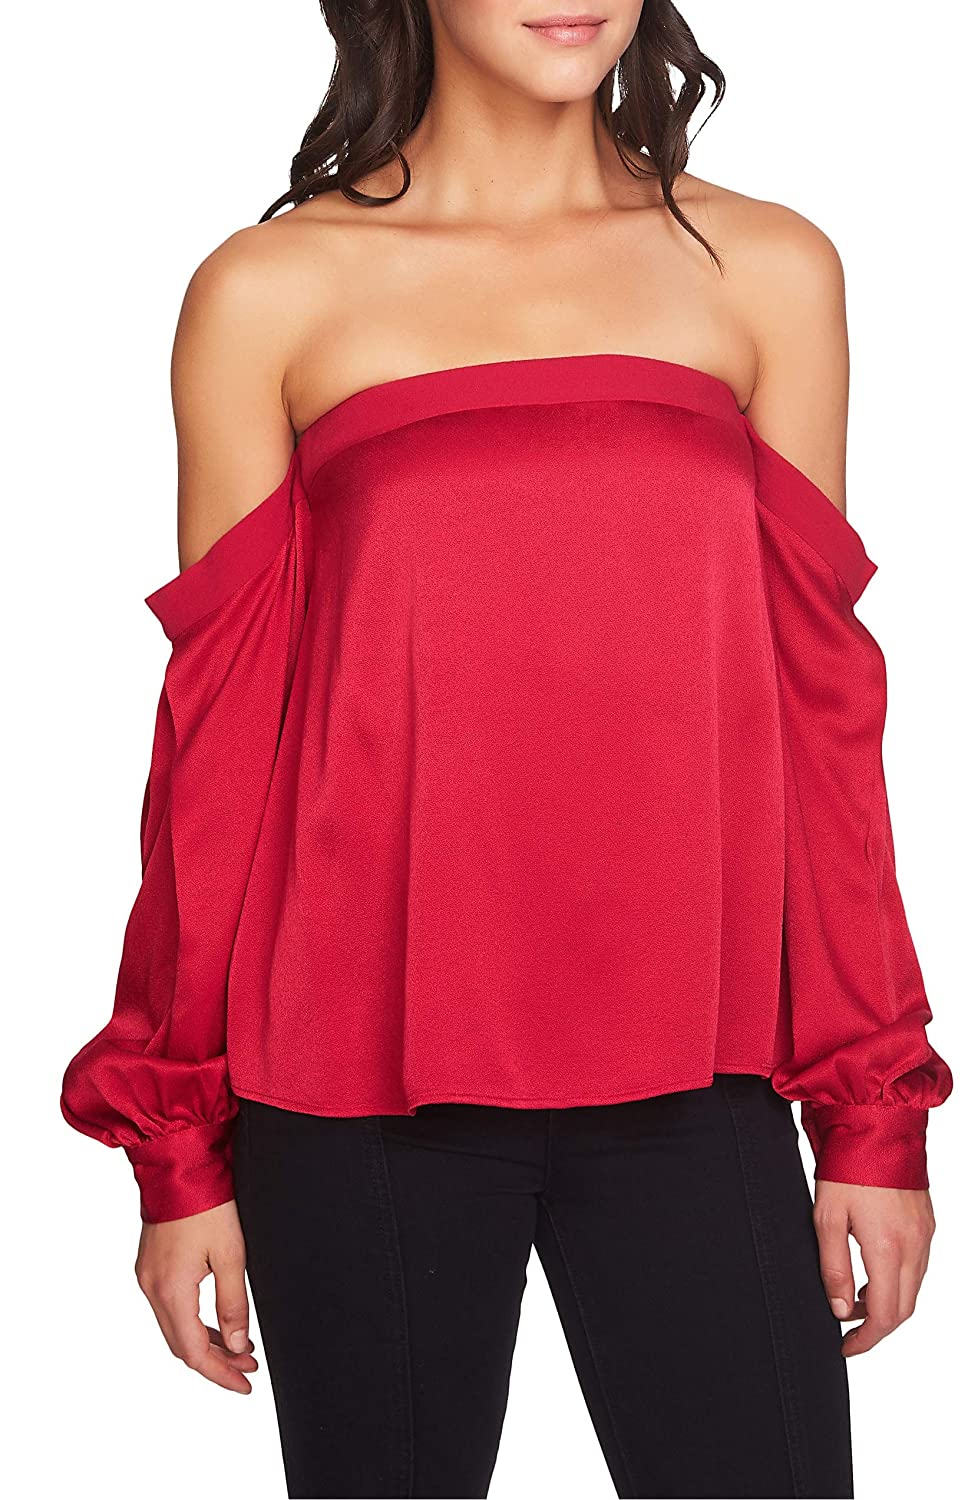 Persianred 1.State Womens Satin Knit Blouse